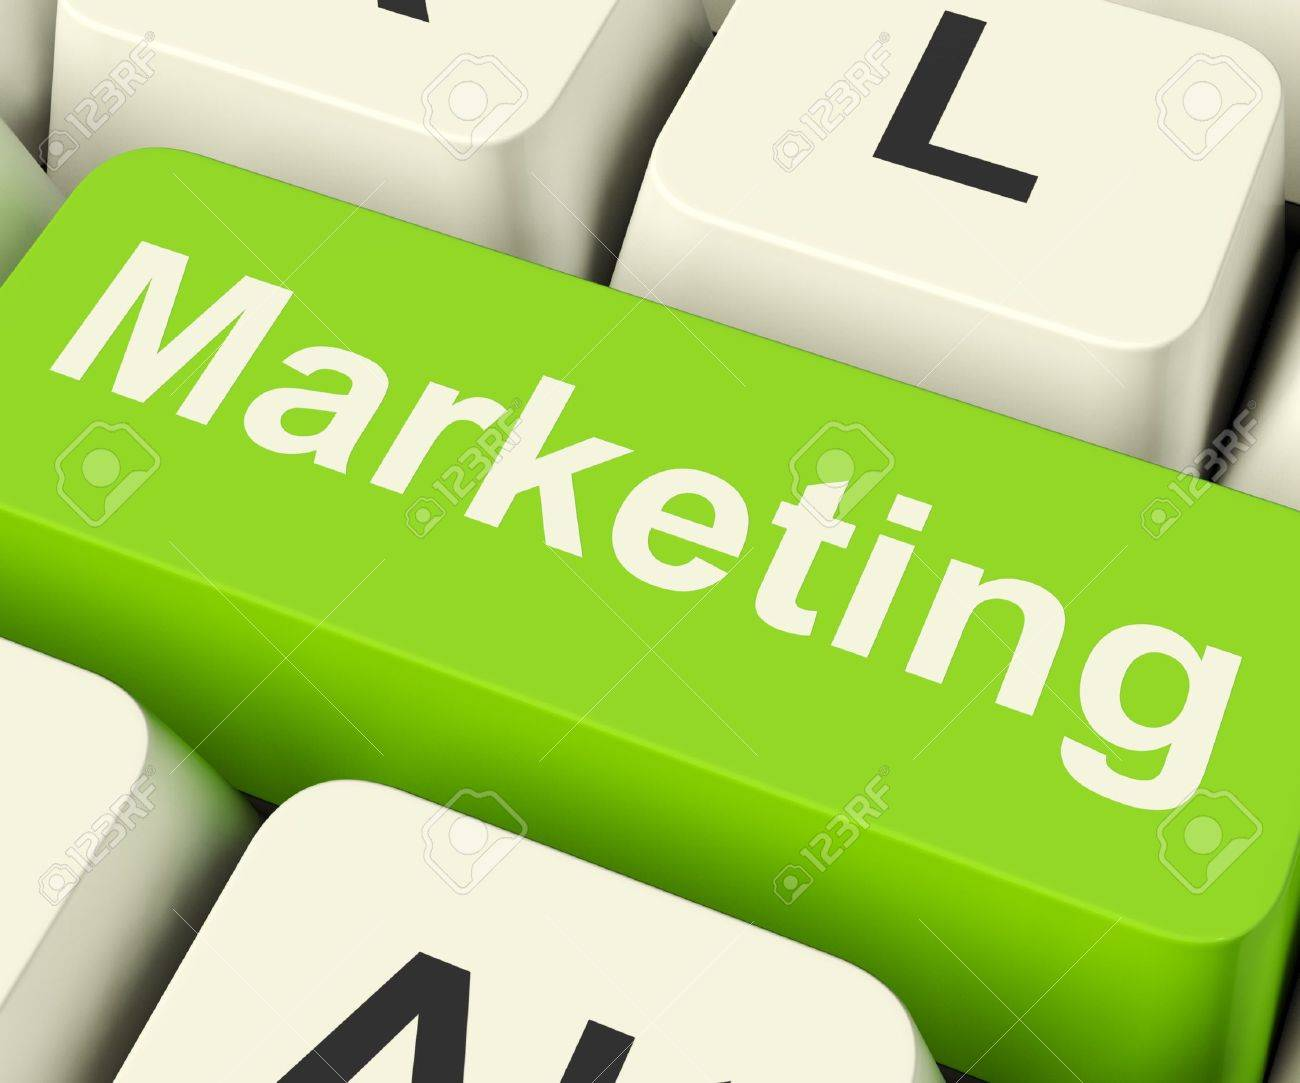 Online Marketing Key Can Be Blogs Websites Social Media Or Email Lists Stock Photo - 13481382